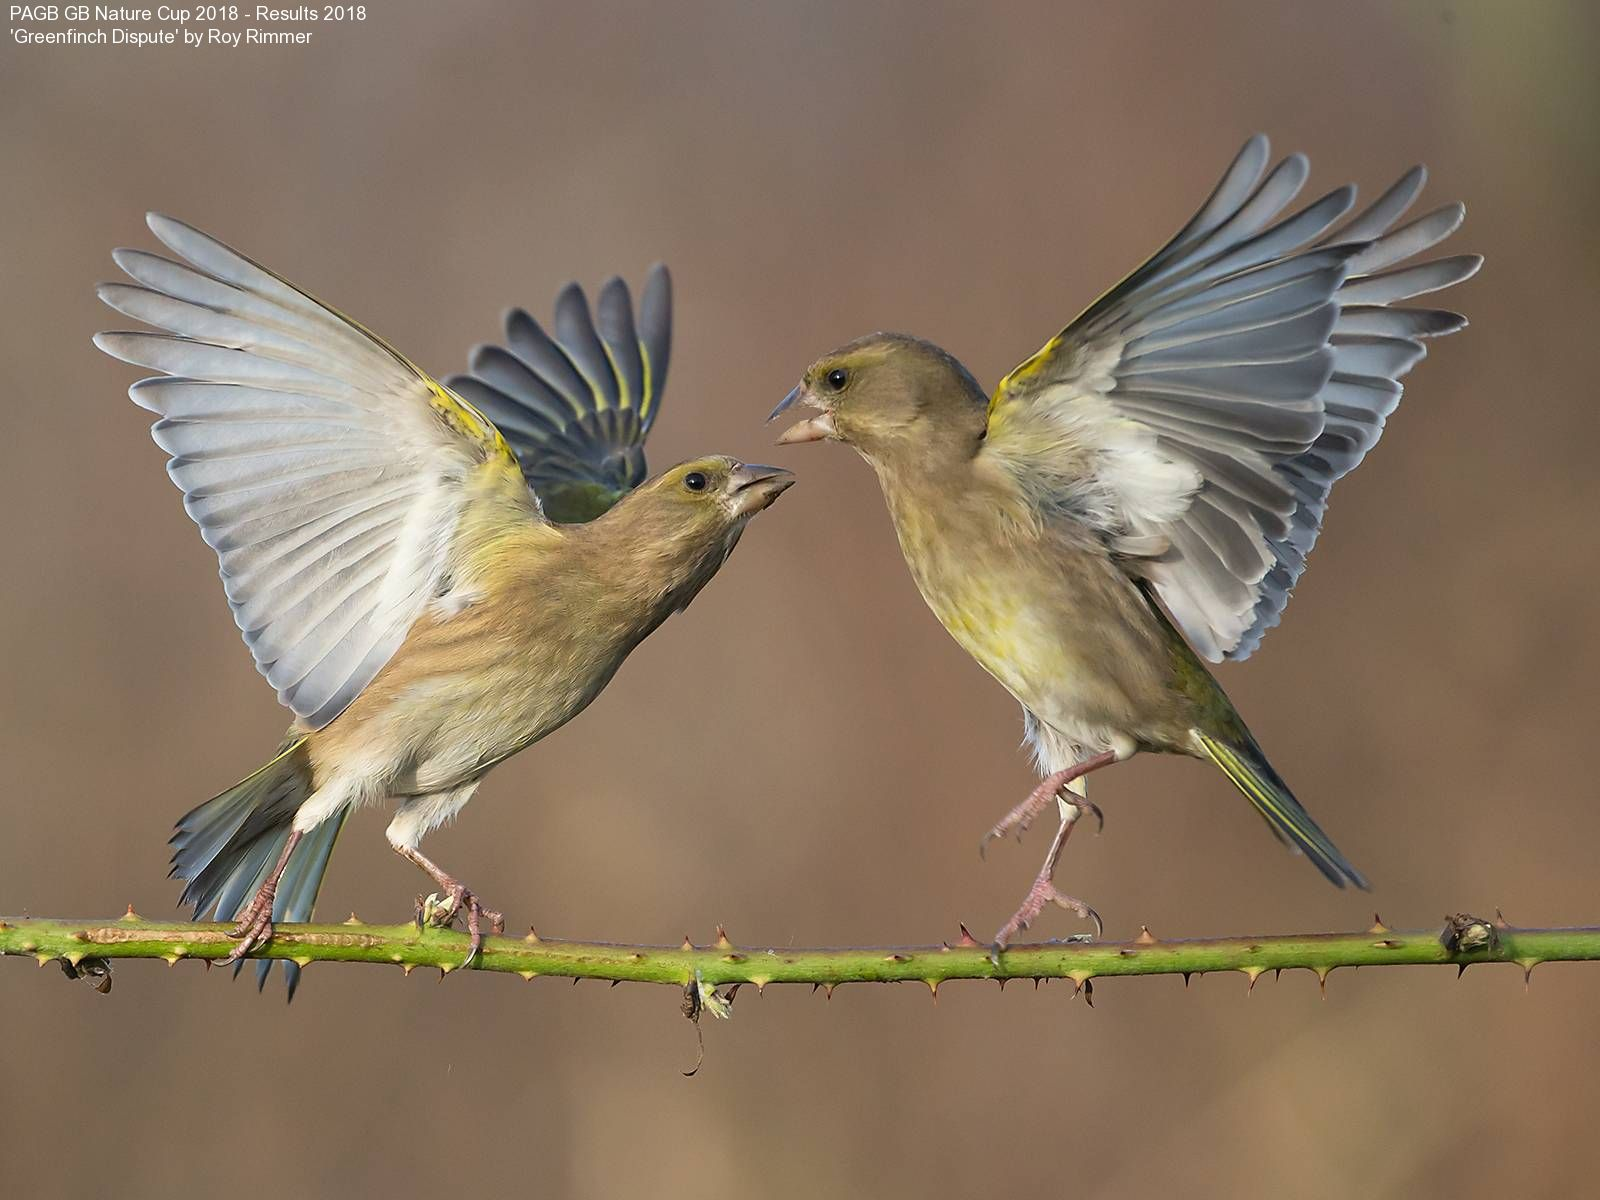 9373_Roy Rimmer_Greenfinch Dispute